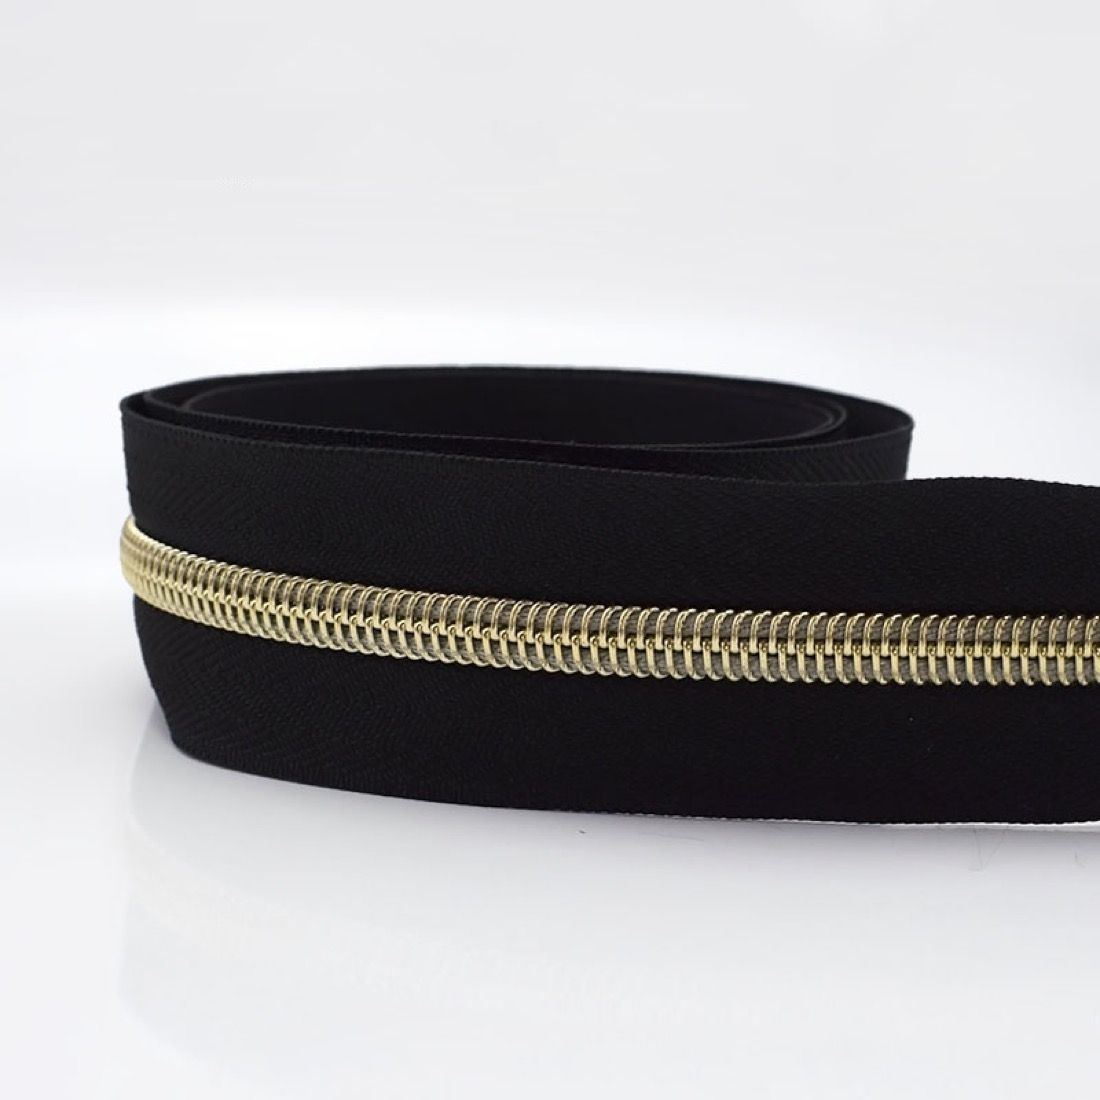 Remnant -Metal Look Continuous Nylon Zip #5 Weight - Light Gold - NoPull - 61cm LENGTH